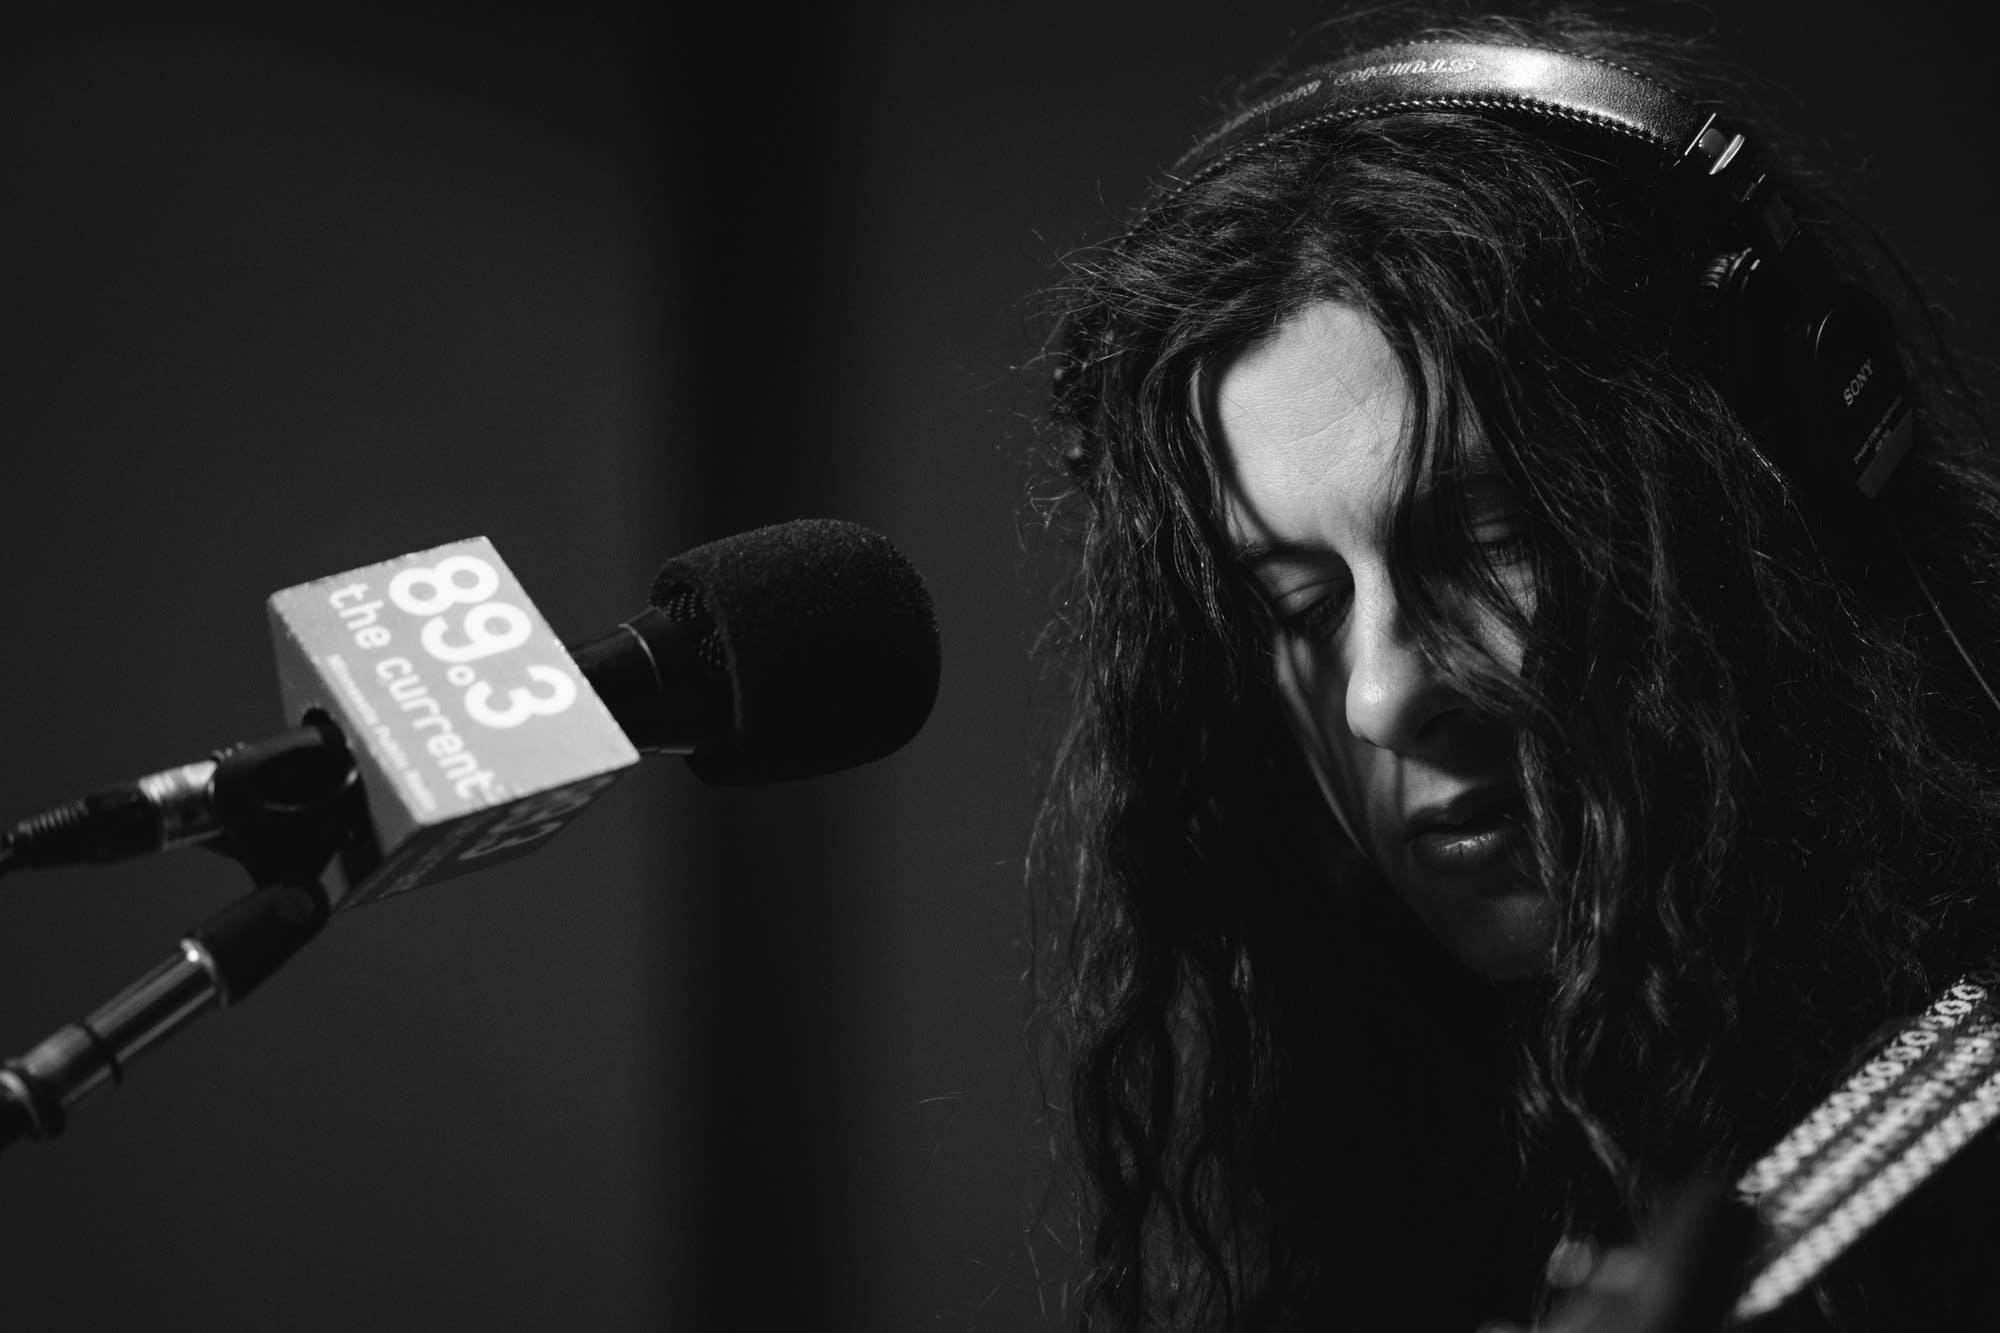 Kurt Vile performs in The Current studio